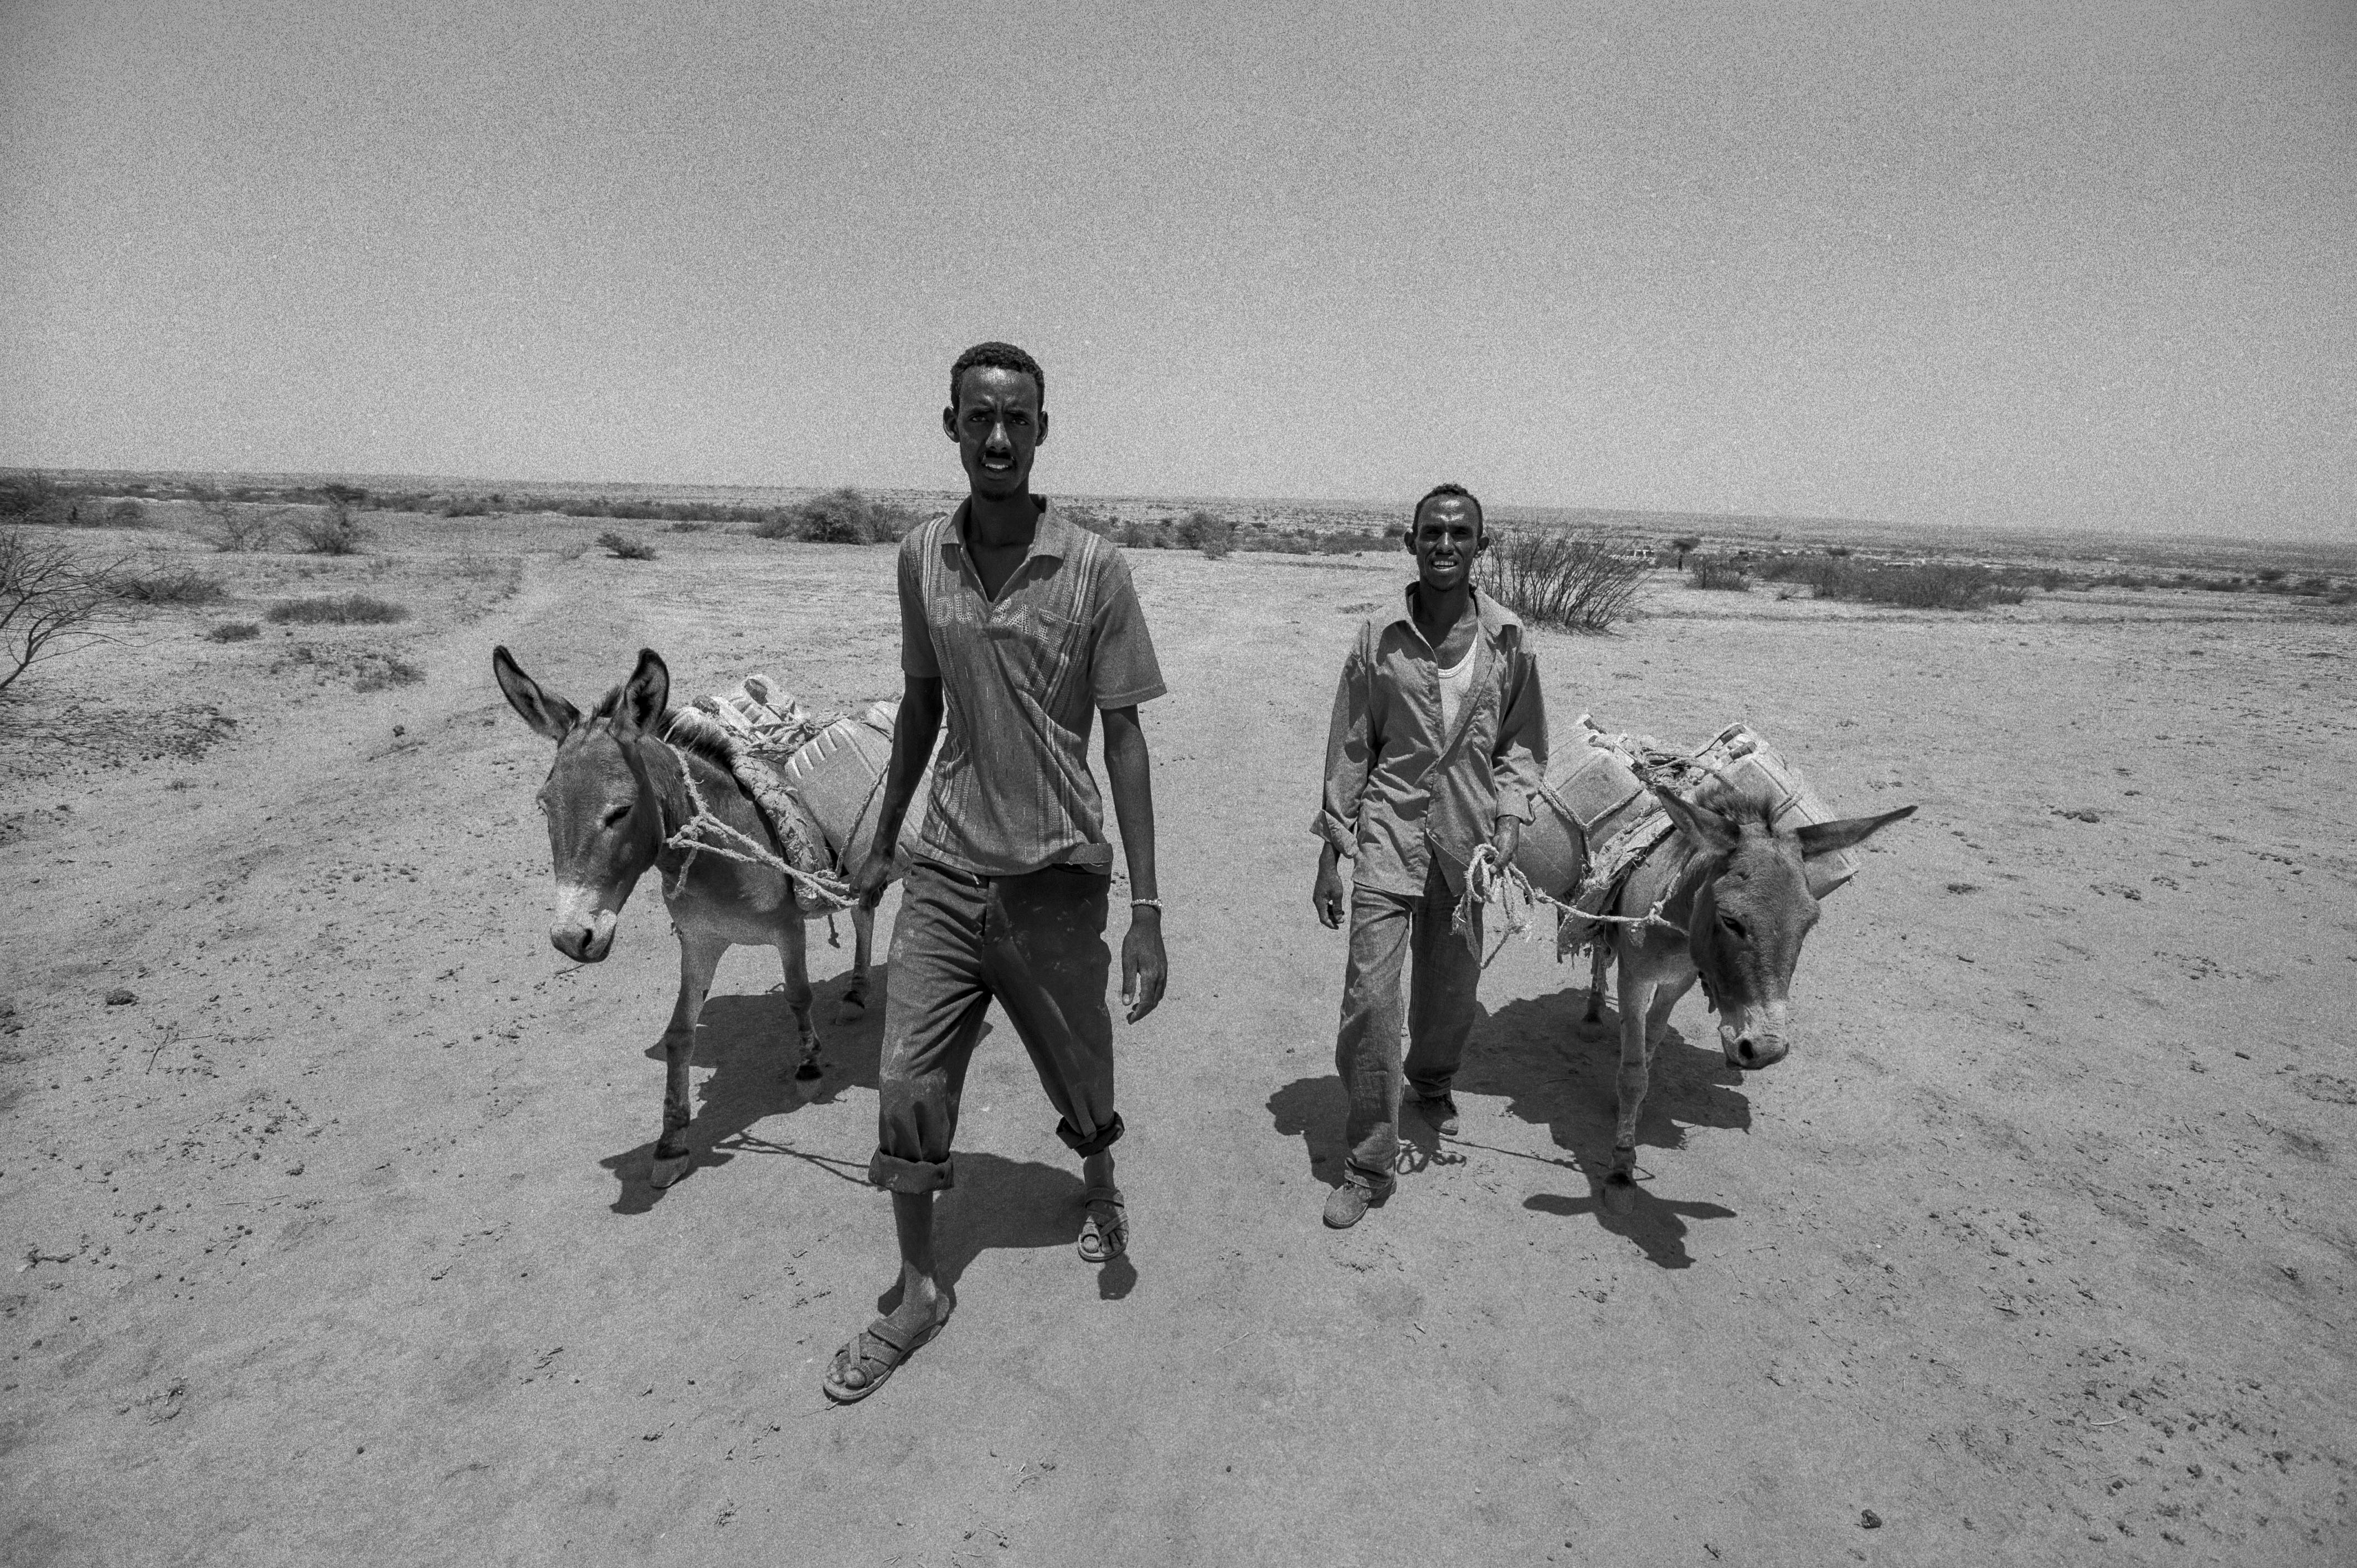 Two young men return to their village after traveling 25 miles to hunt for water. Photo by Sebastian Rich for UNICEF